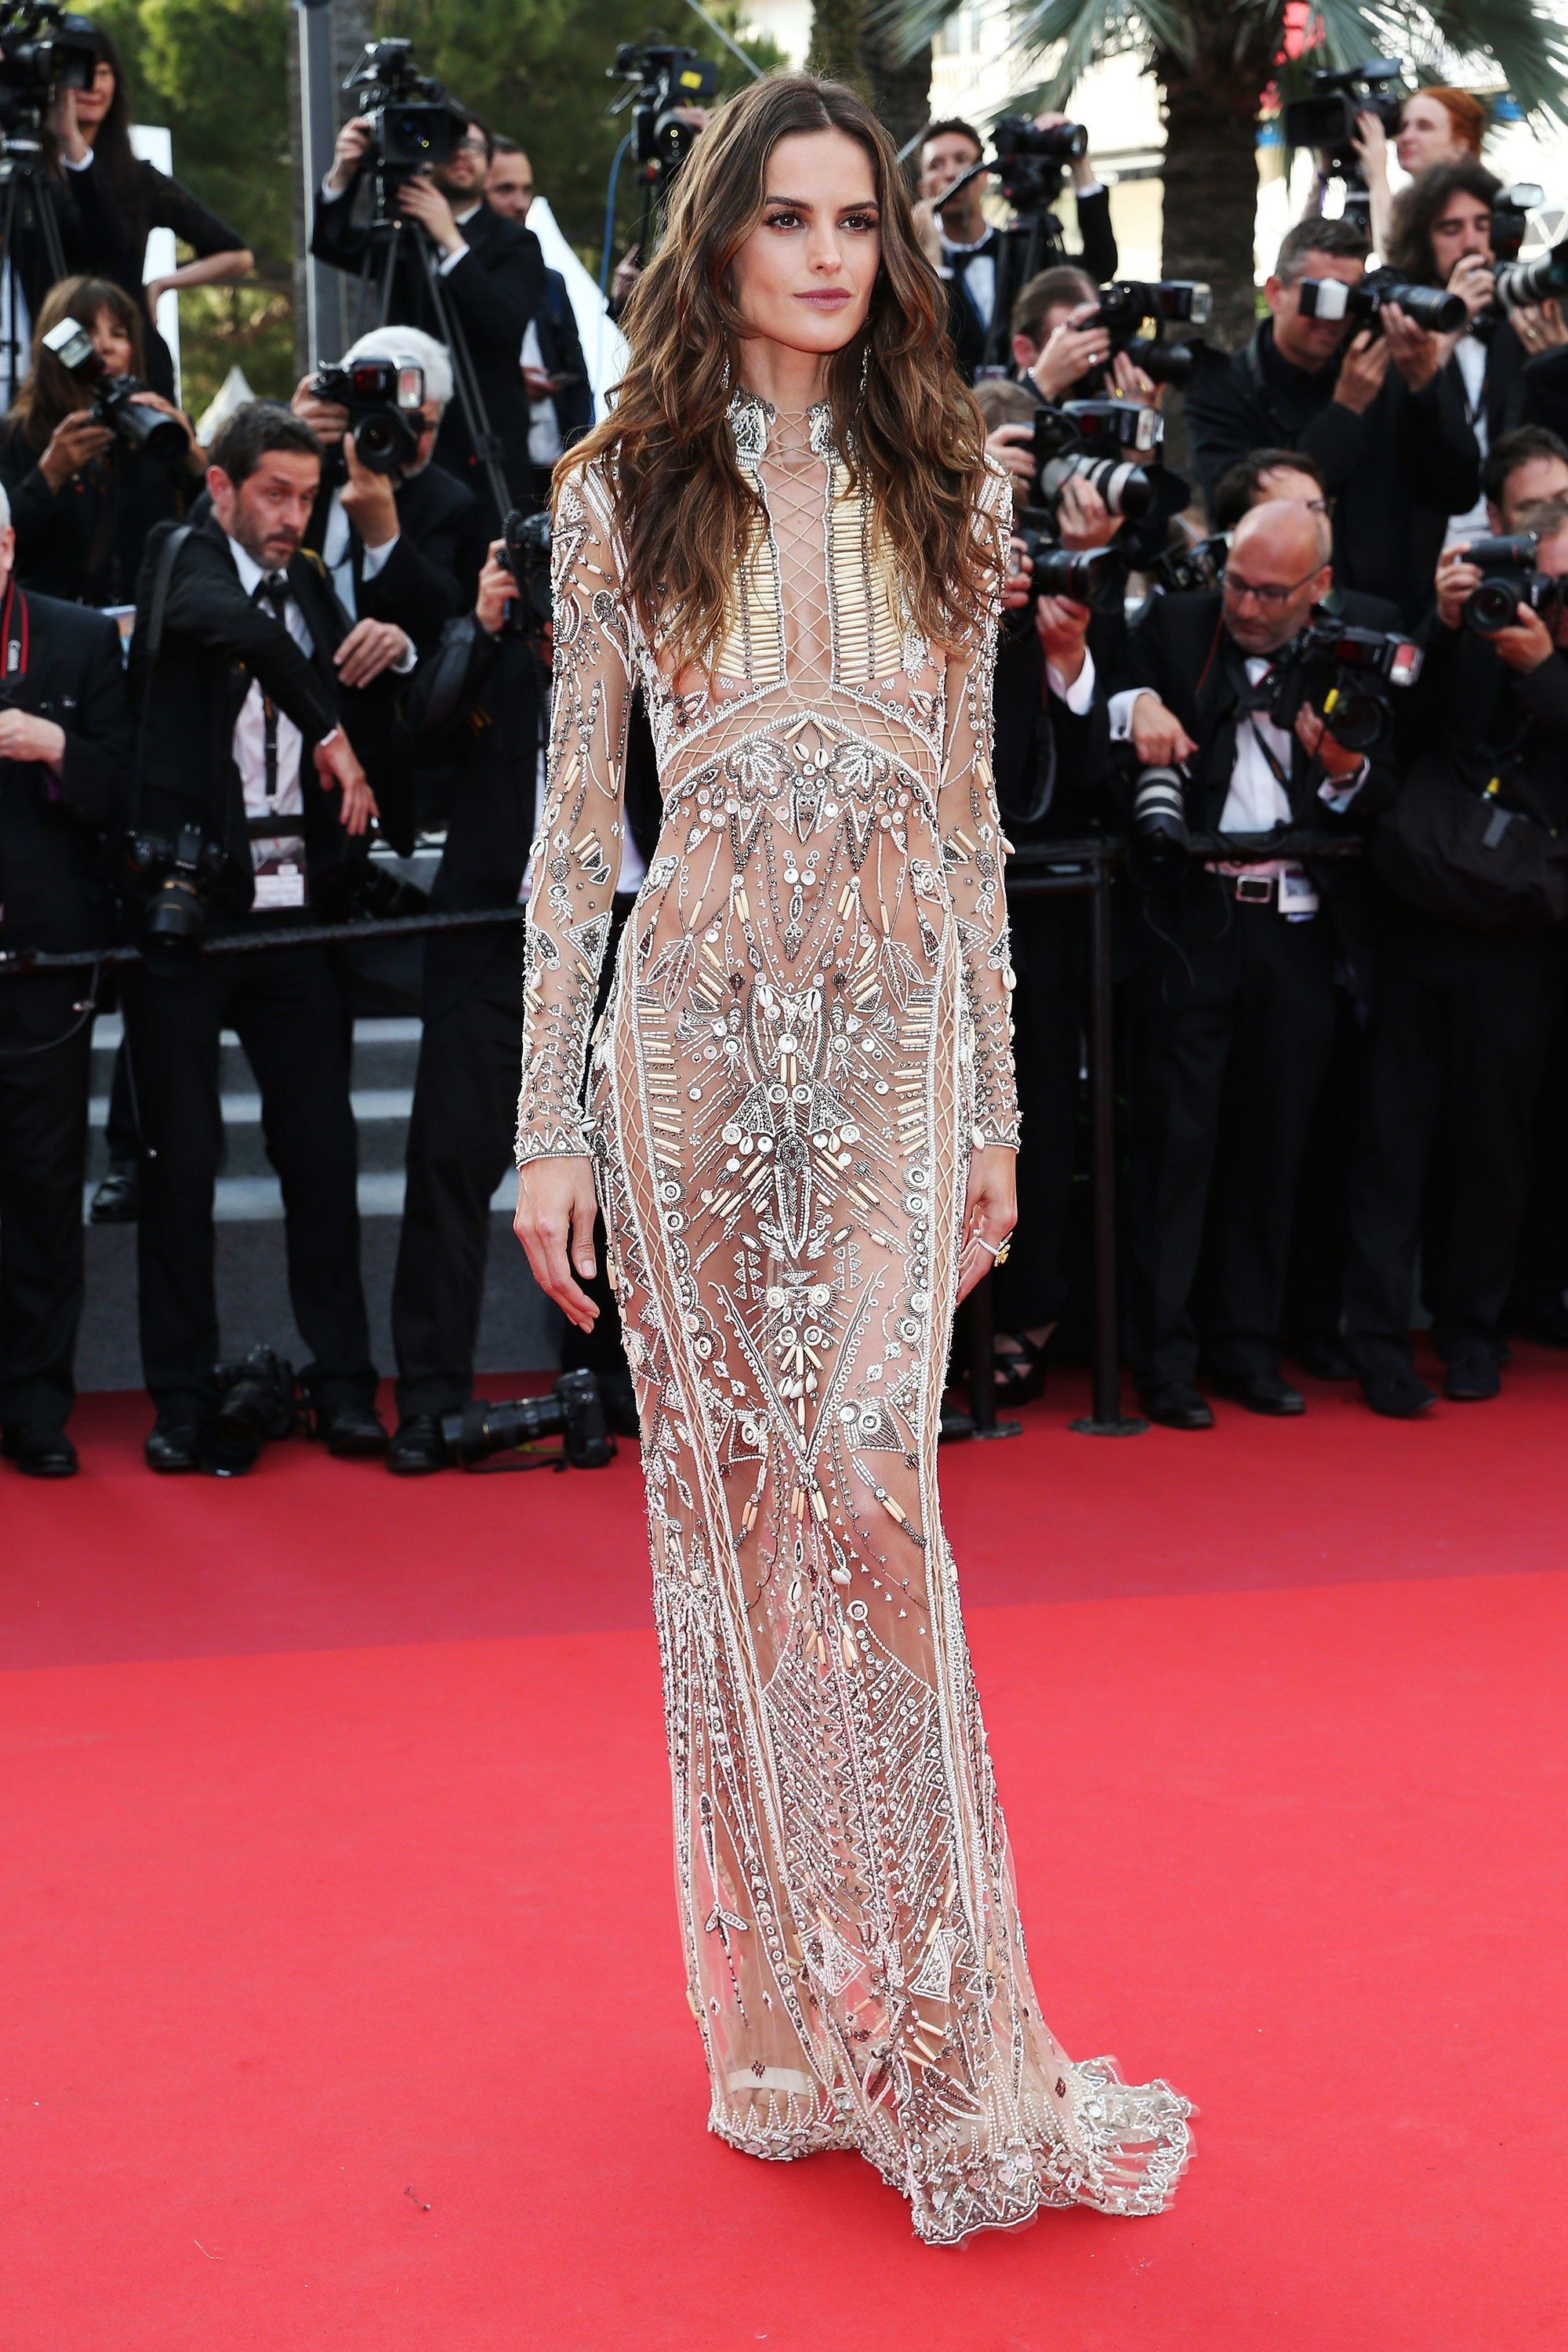 Irina Shayk Drops A Post Pregnancyshell At Cannes Red Carpet Readyred Carpet Looksfestival Cannes Film